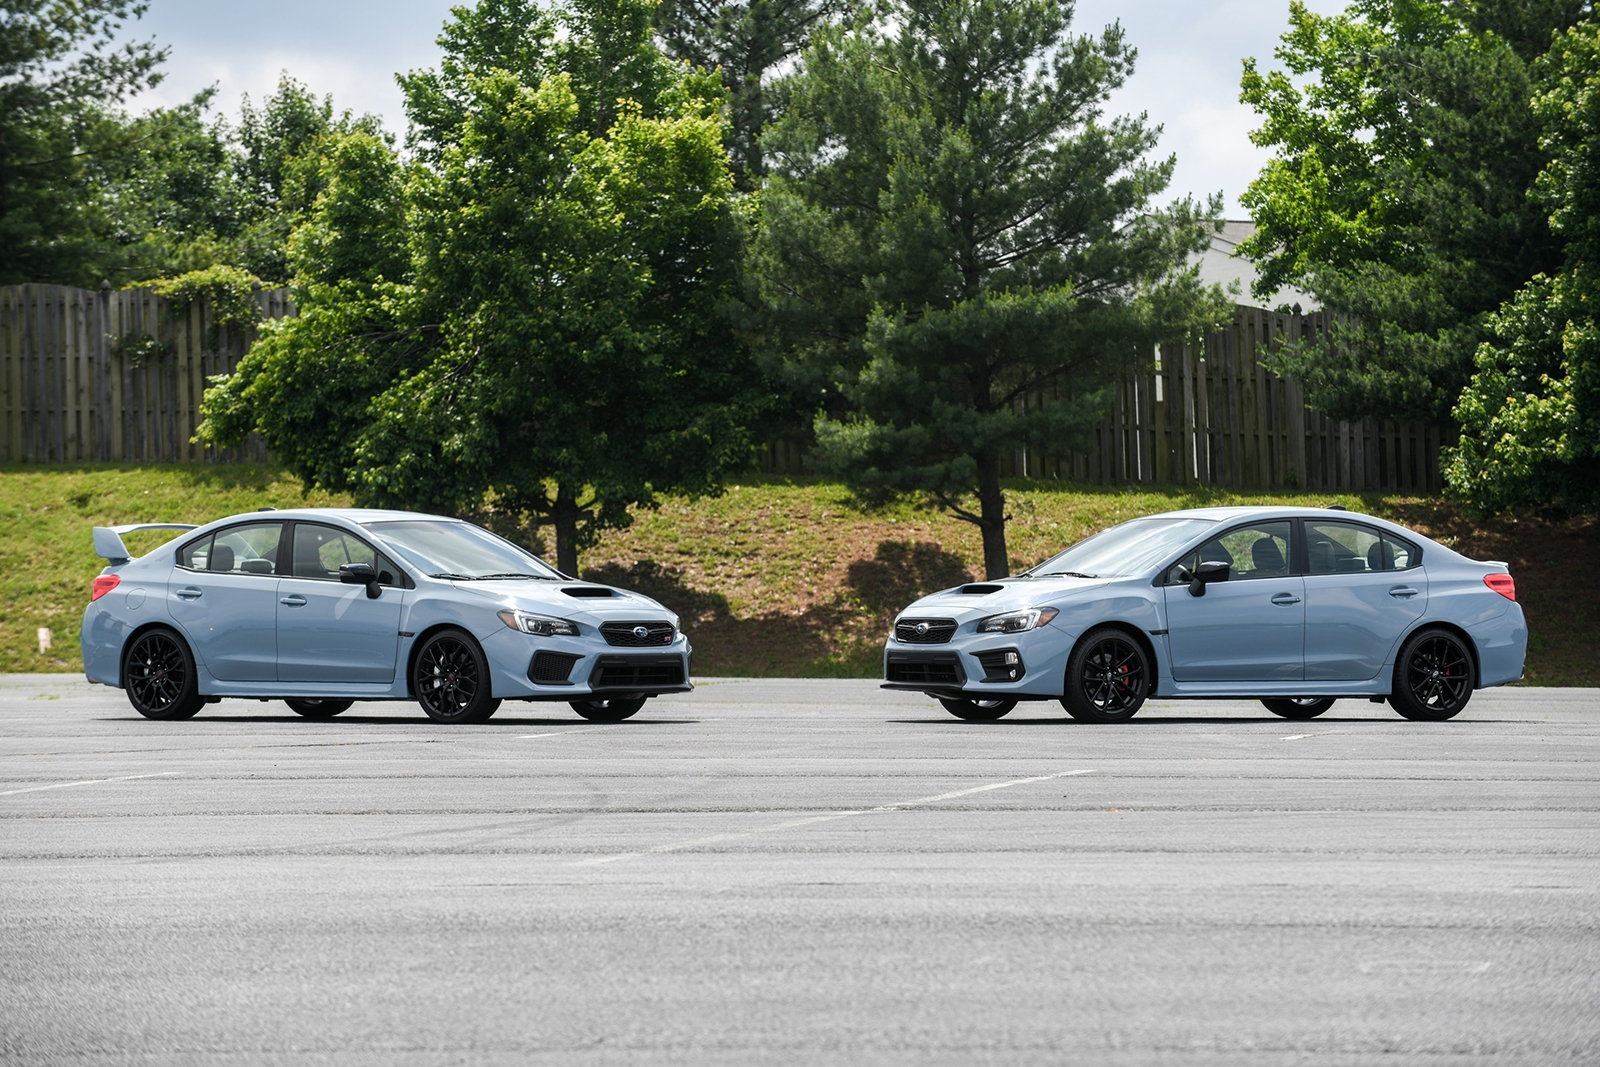 subaru-wrx-and-wrx-sti-series-gray-01